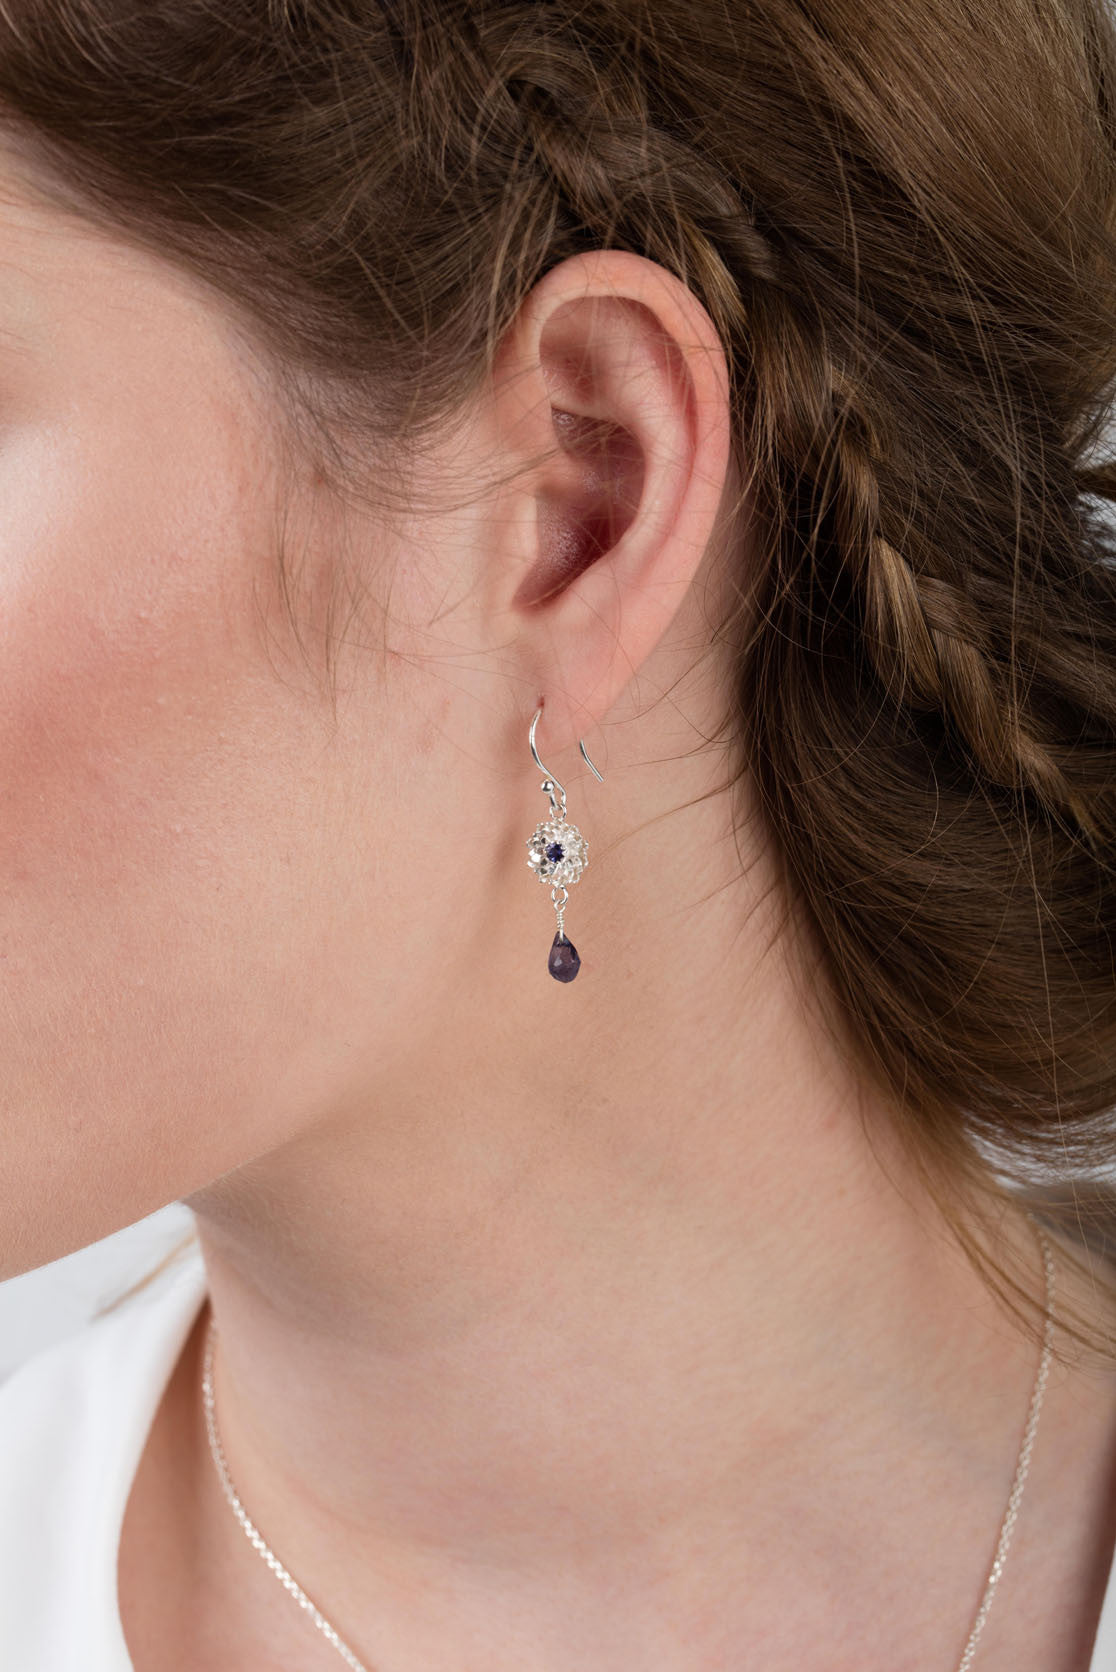 925 sterling silver with iolite centre and iolite drop